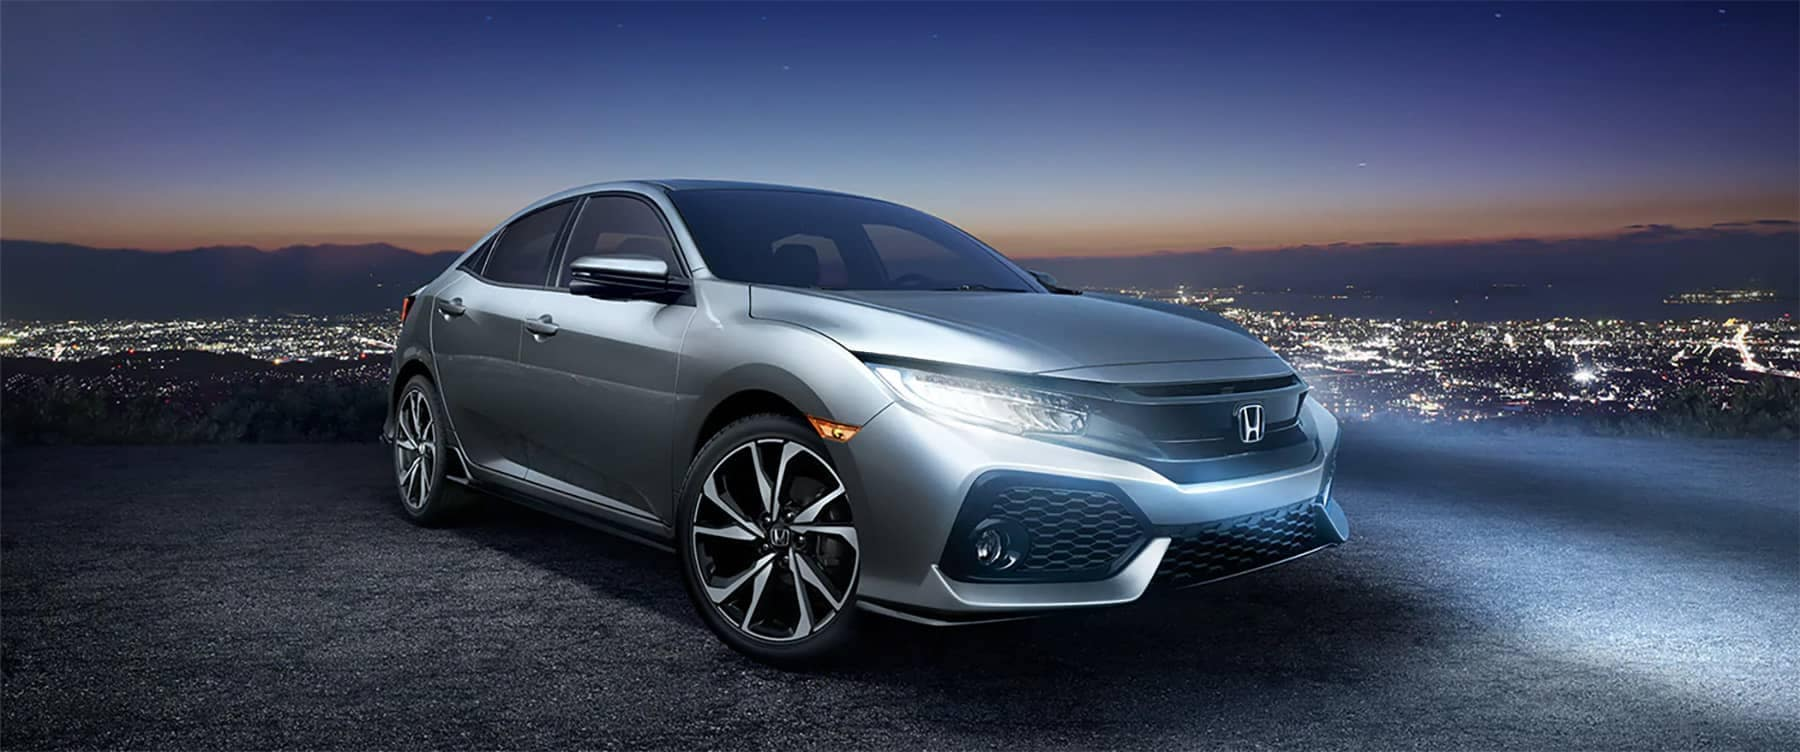 2019 Honda Civic HB Headlights